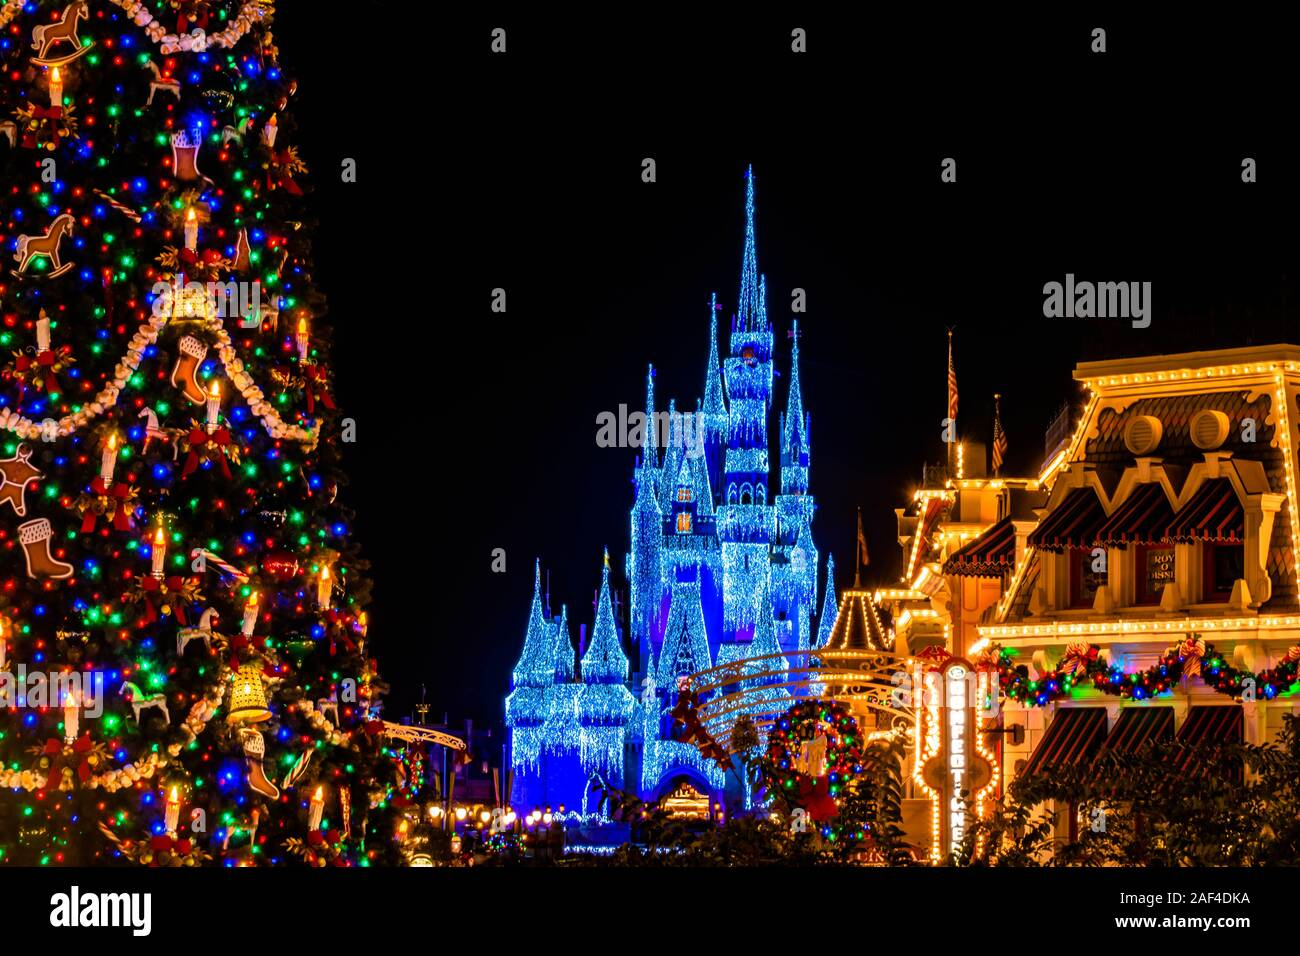 Disney Castle Christmas High Resolution Stock Photography And Images Alamy